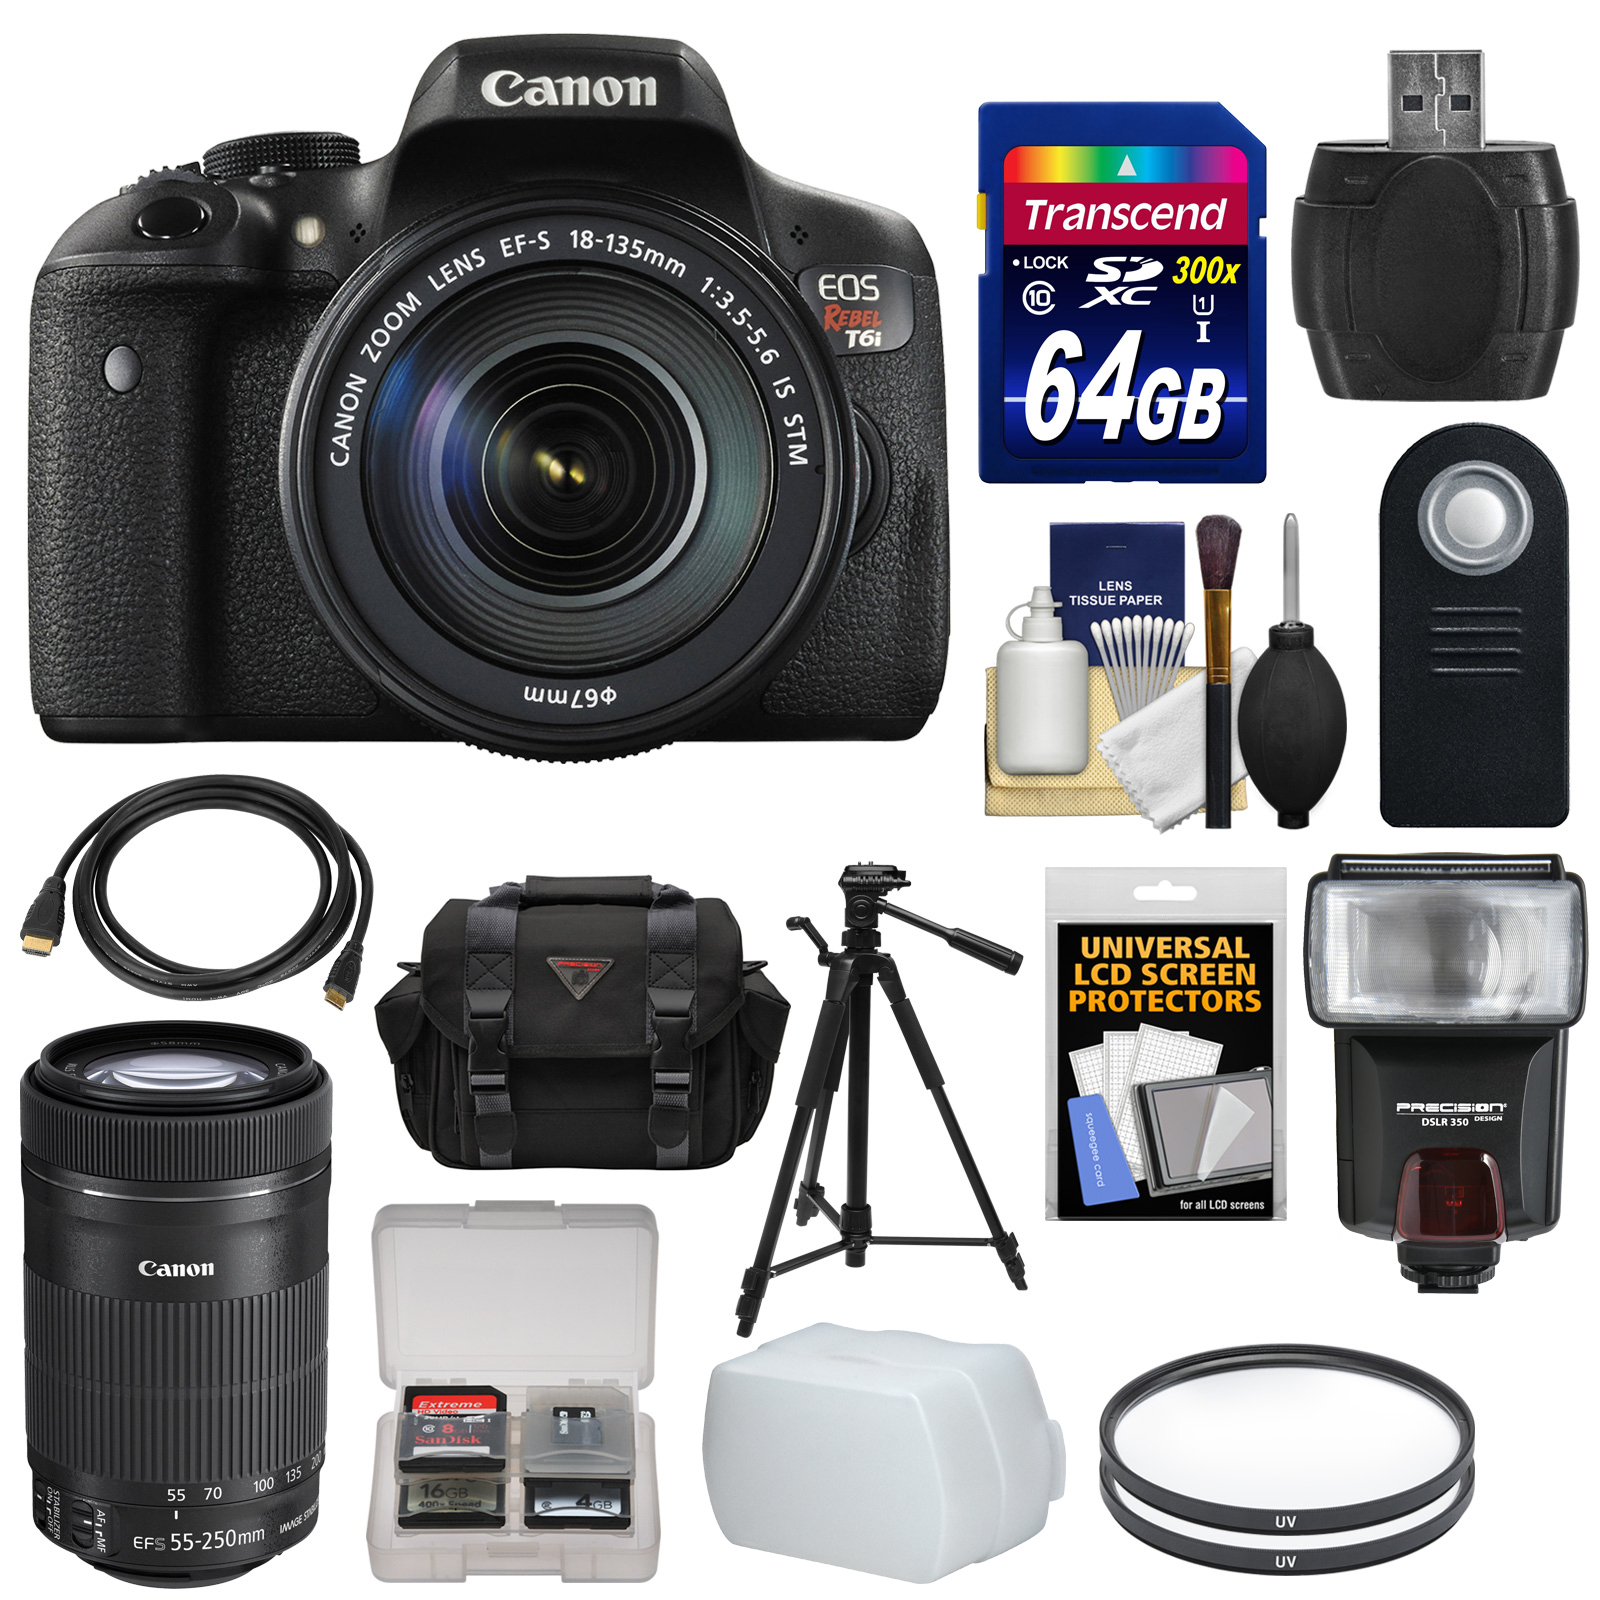 51fccfcf 1b37 4fd0 899f 8a2bc0e3efb3 1.e503b5e39a98d2a99acb6995c8ffba57 - Canon EOS Rebel T6/EOS 1300D review